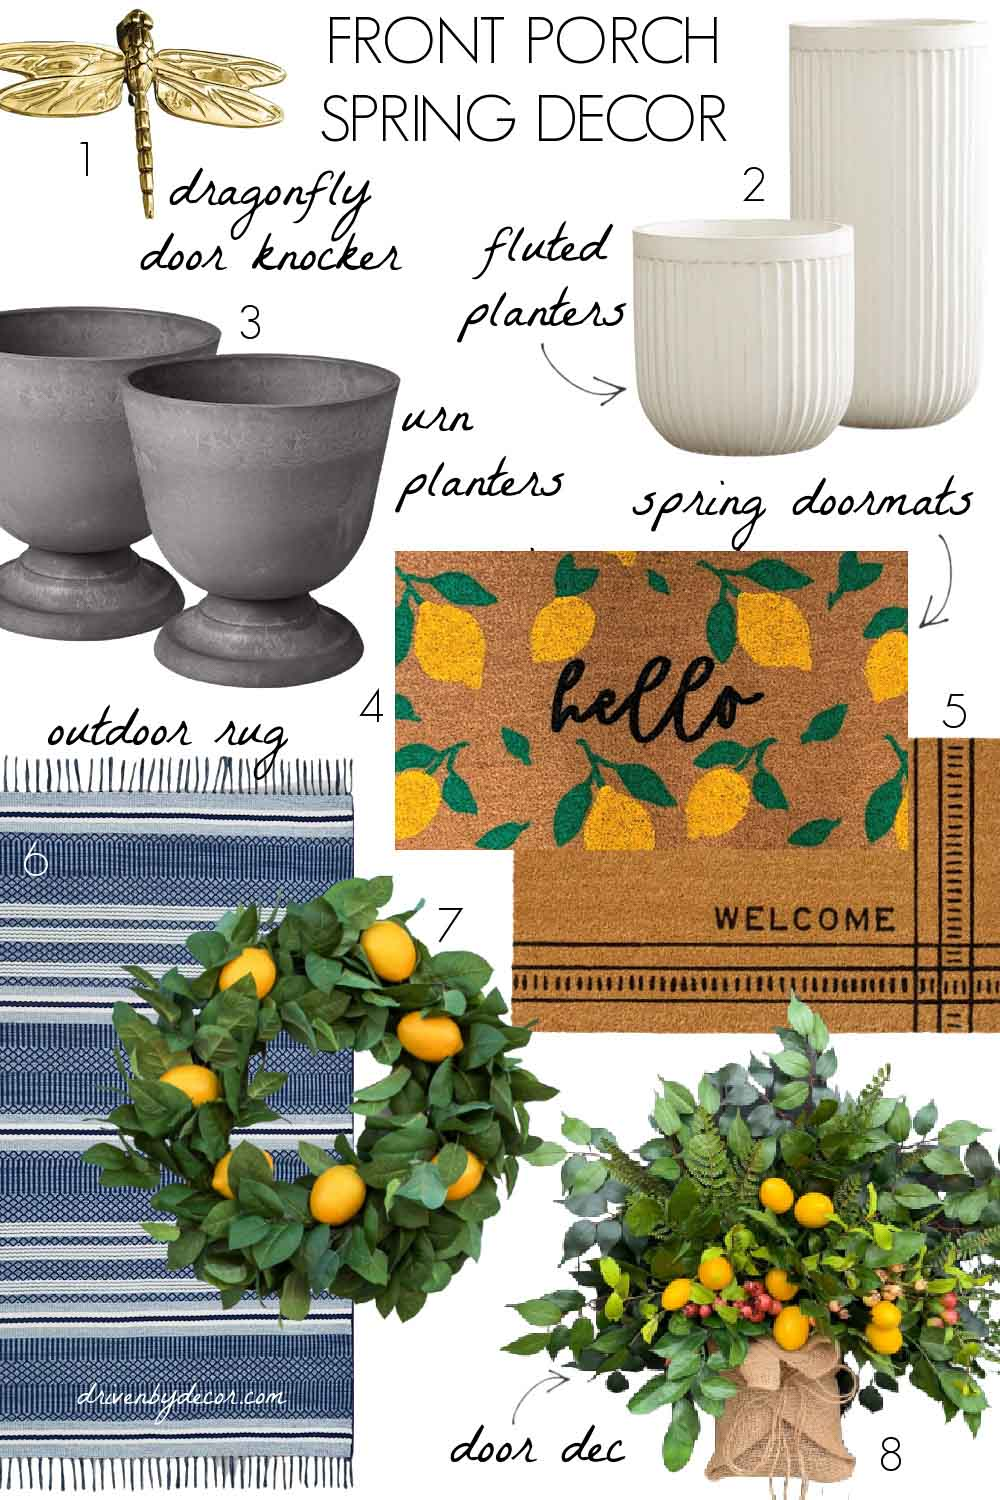 Spring decor favorites for your front porch!